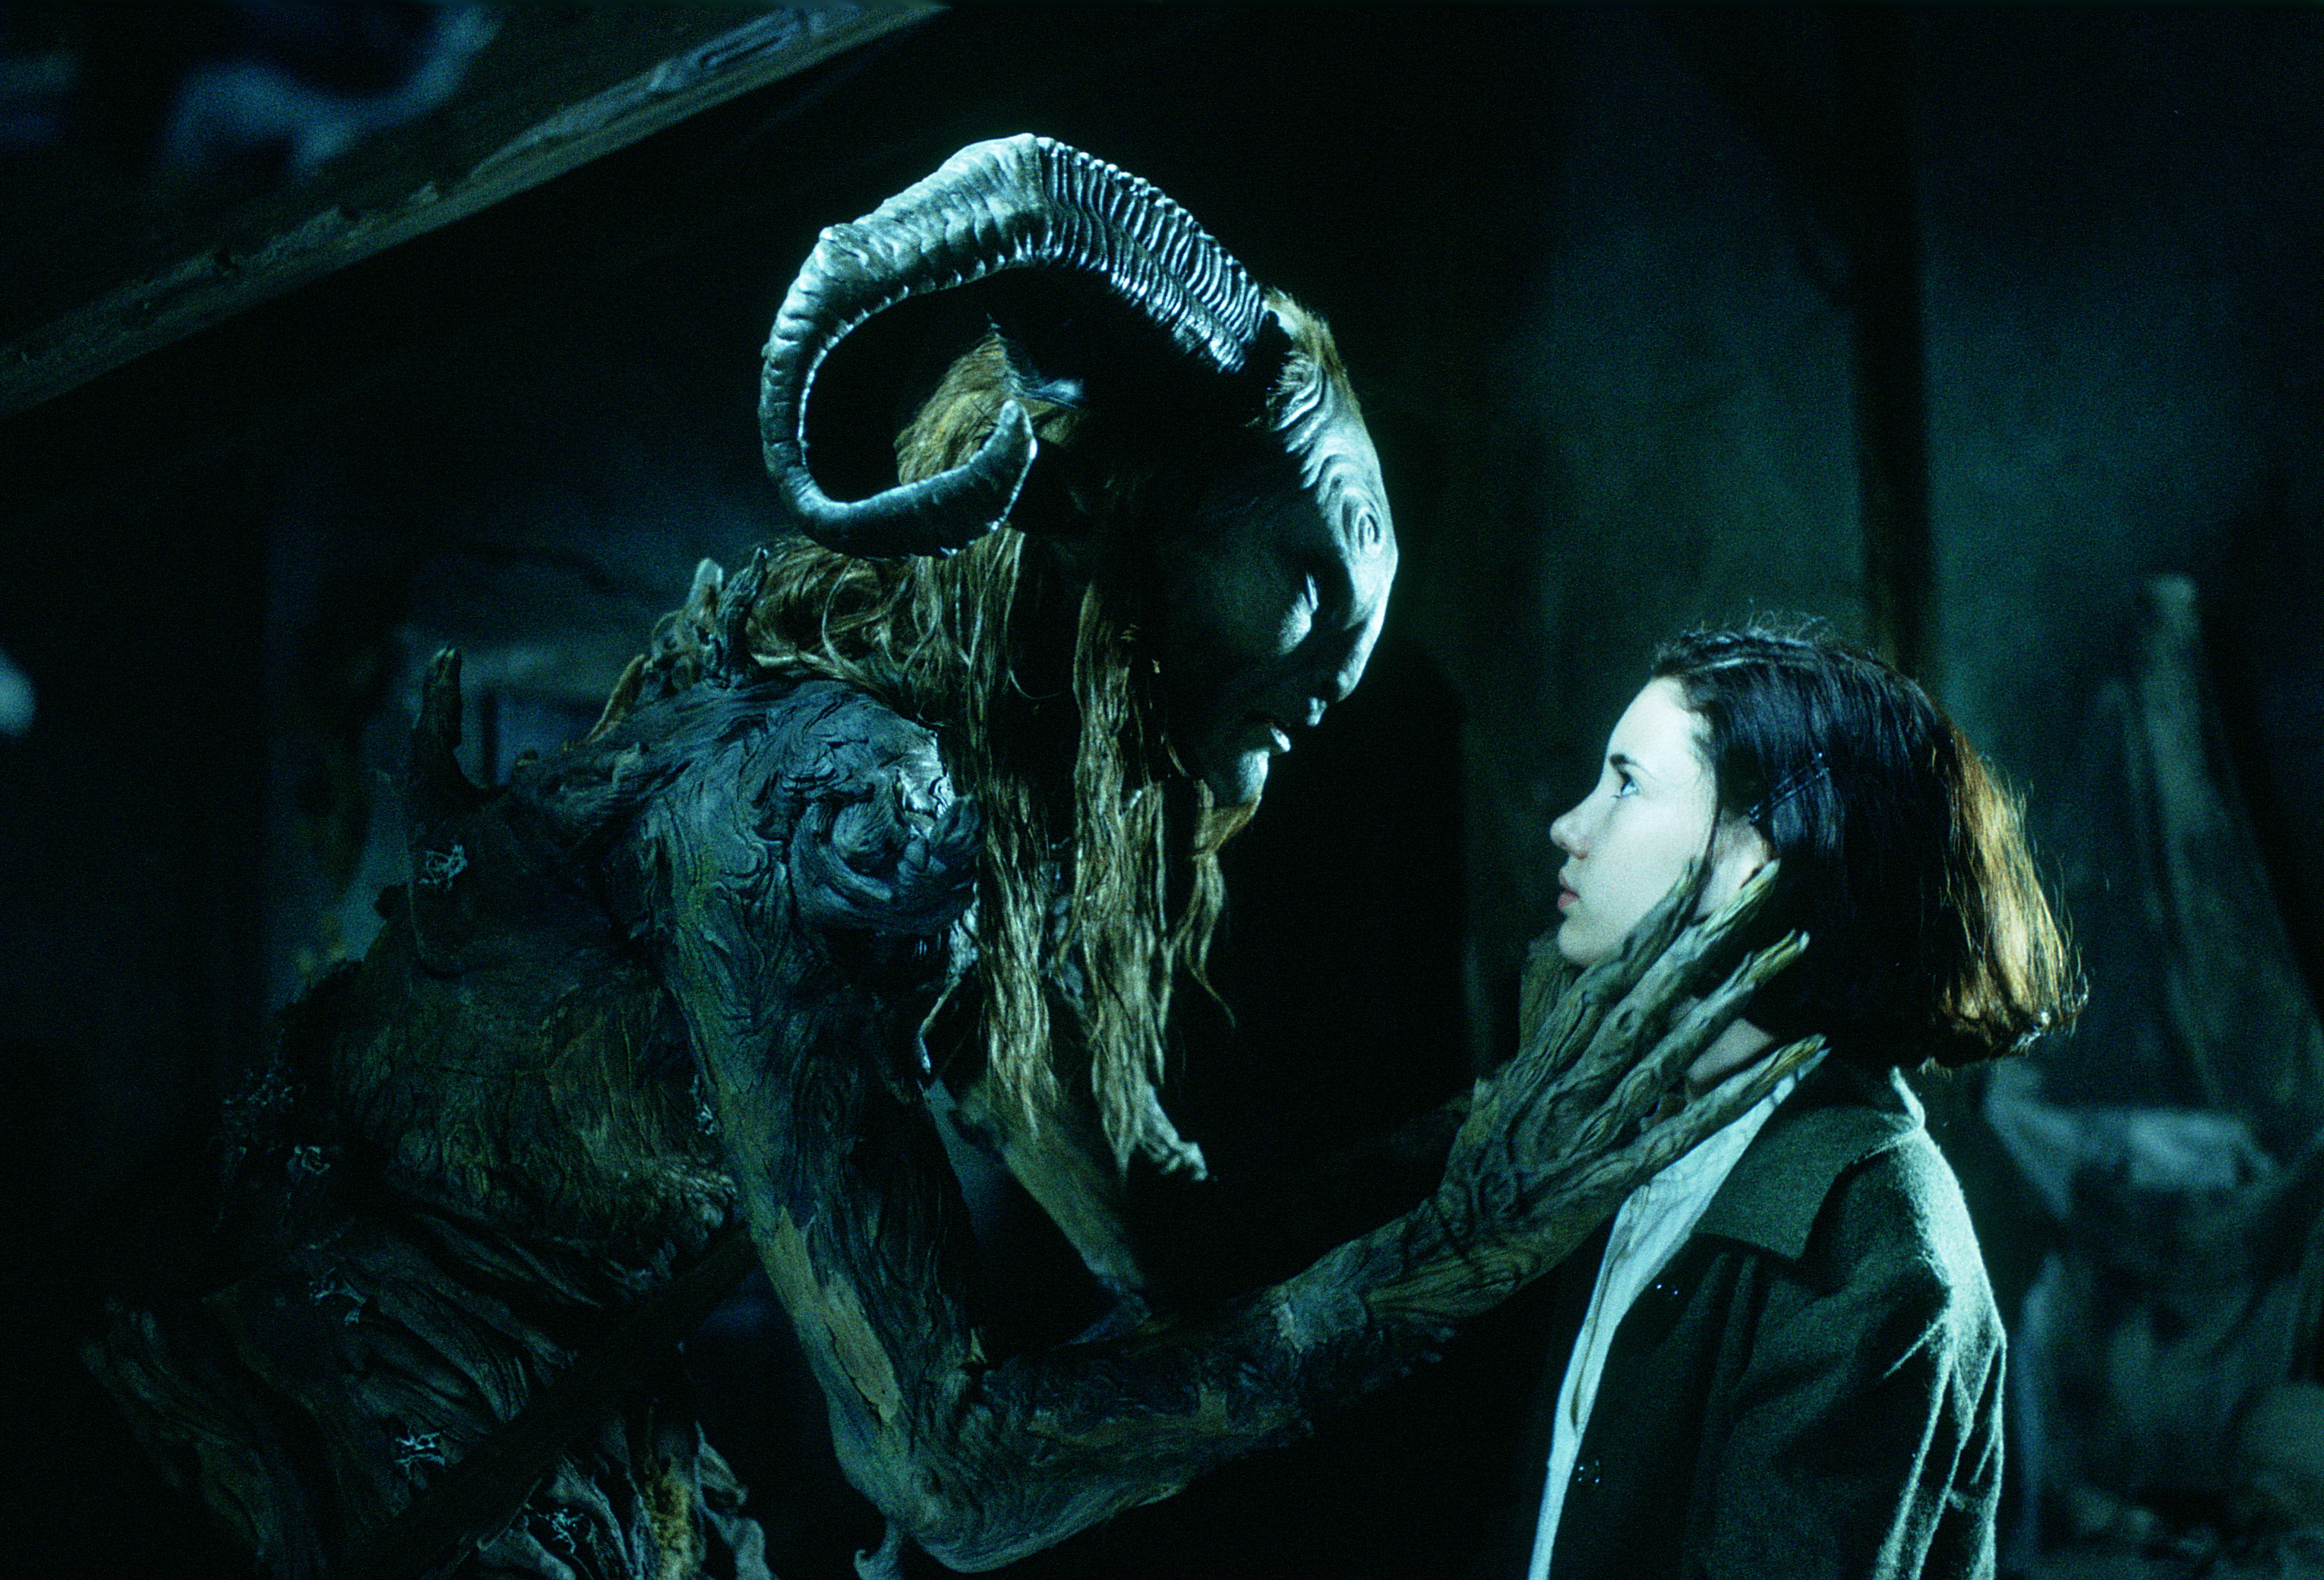 For that matter, the Faun from Pan's Labyrinth is a classic Abductor type.